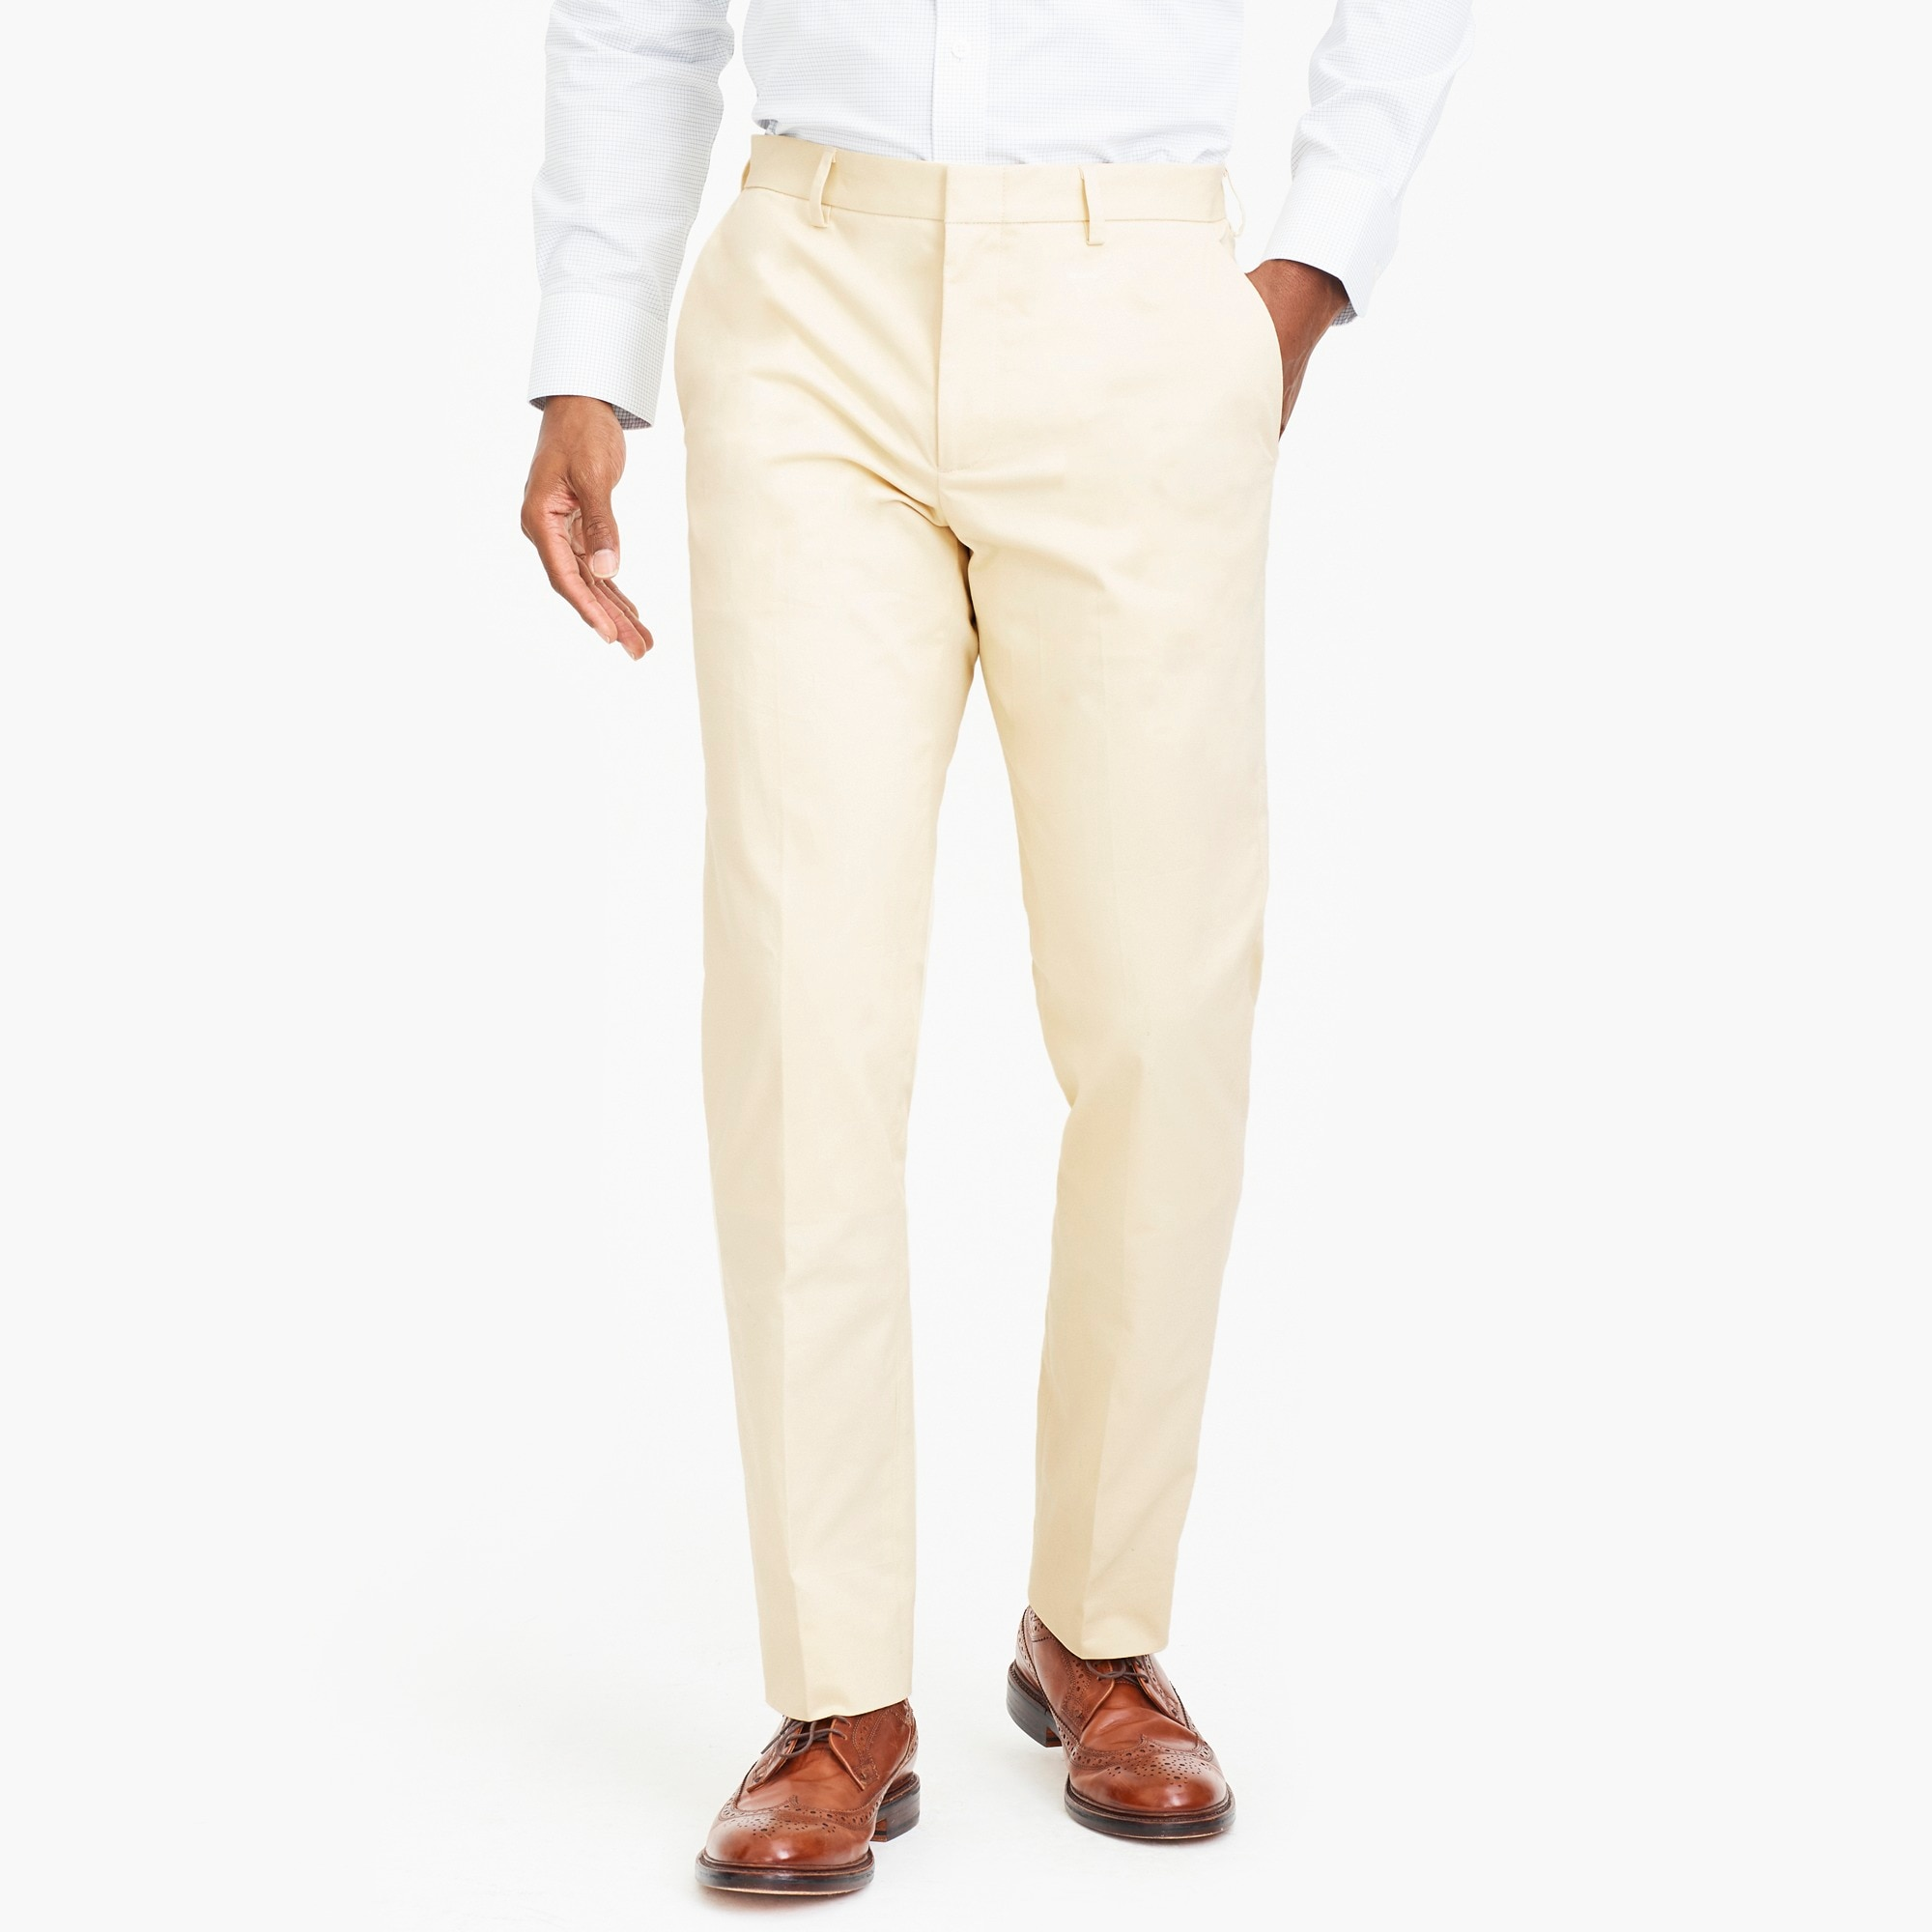 Image 1 for Slim-fit Thompson suit pant in flex chino